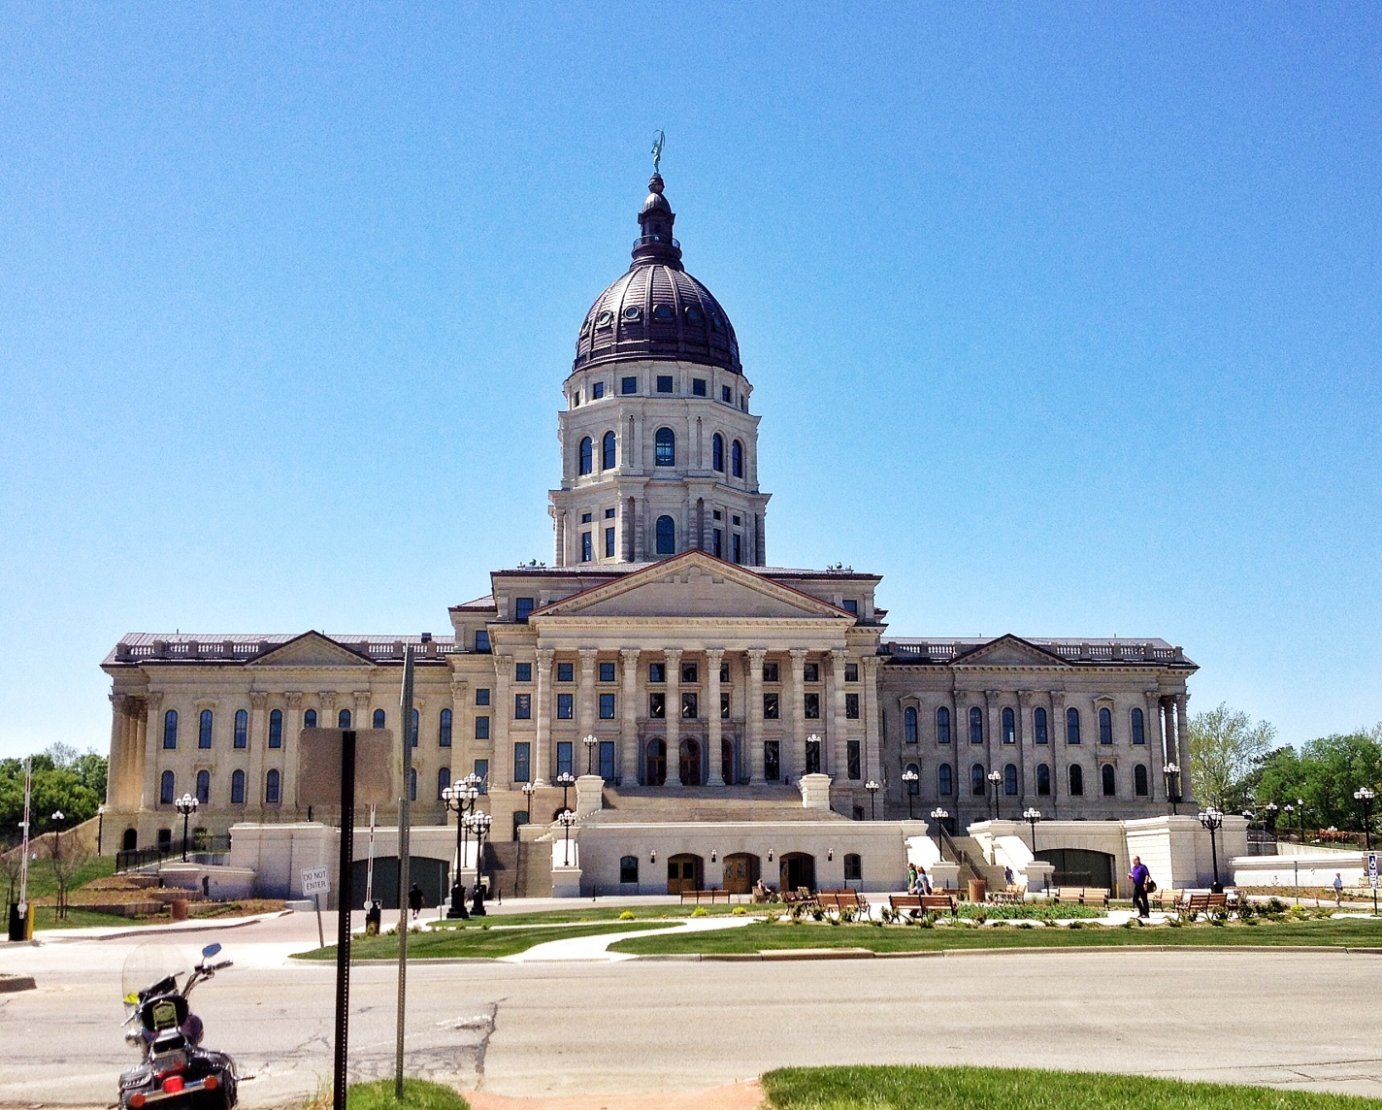 Kansas State Capitol Building (Photo by J. Schafer)